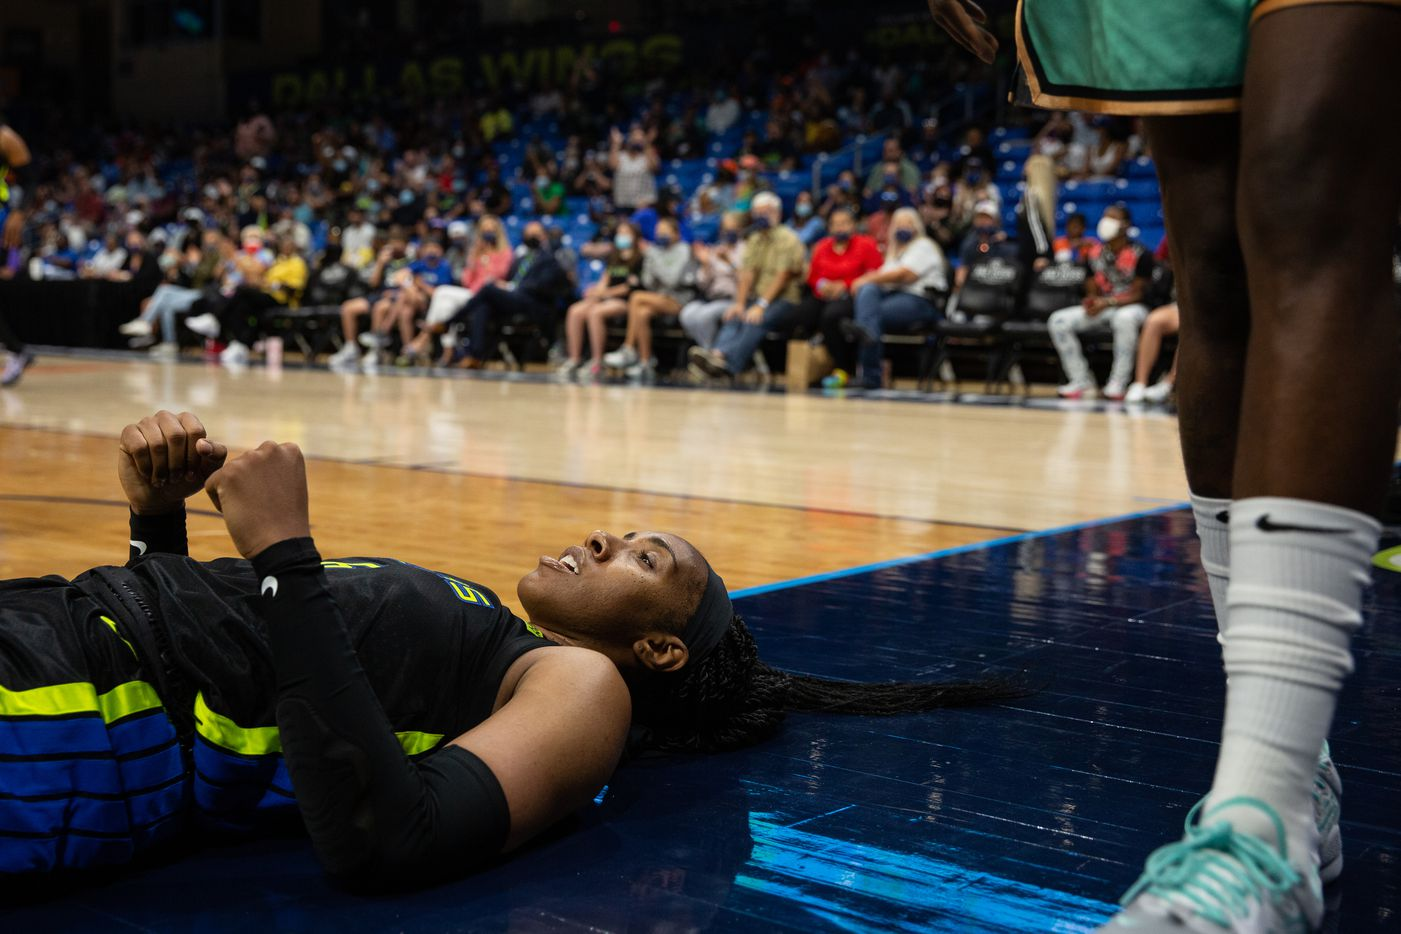 Dallas Wings forward Kayla Thorton (6) celebrates after a successful layup shot against NY Liberty at College Park Center in Arlington, TX on September 11, 2021.  (Shelby Tauber/Special Contributor)